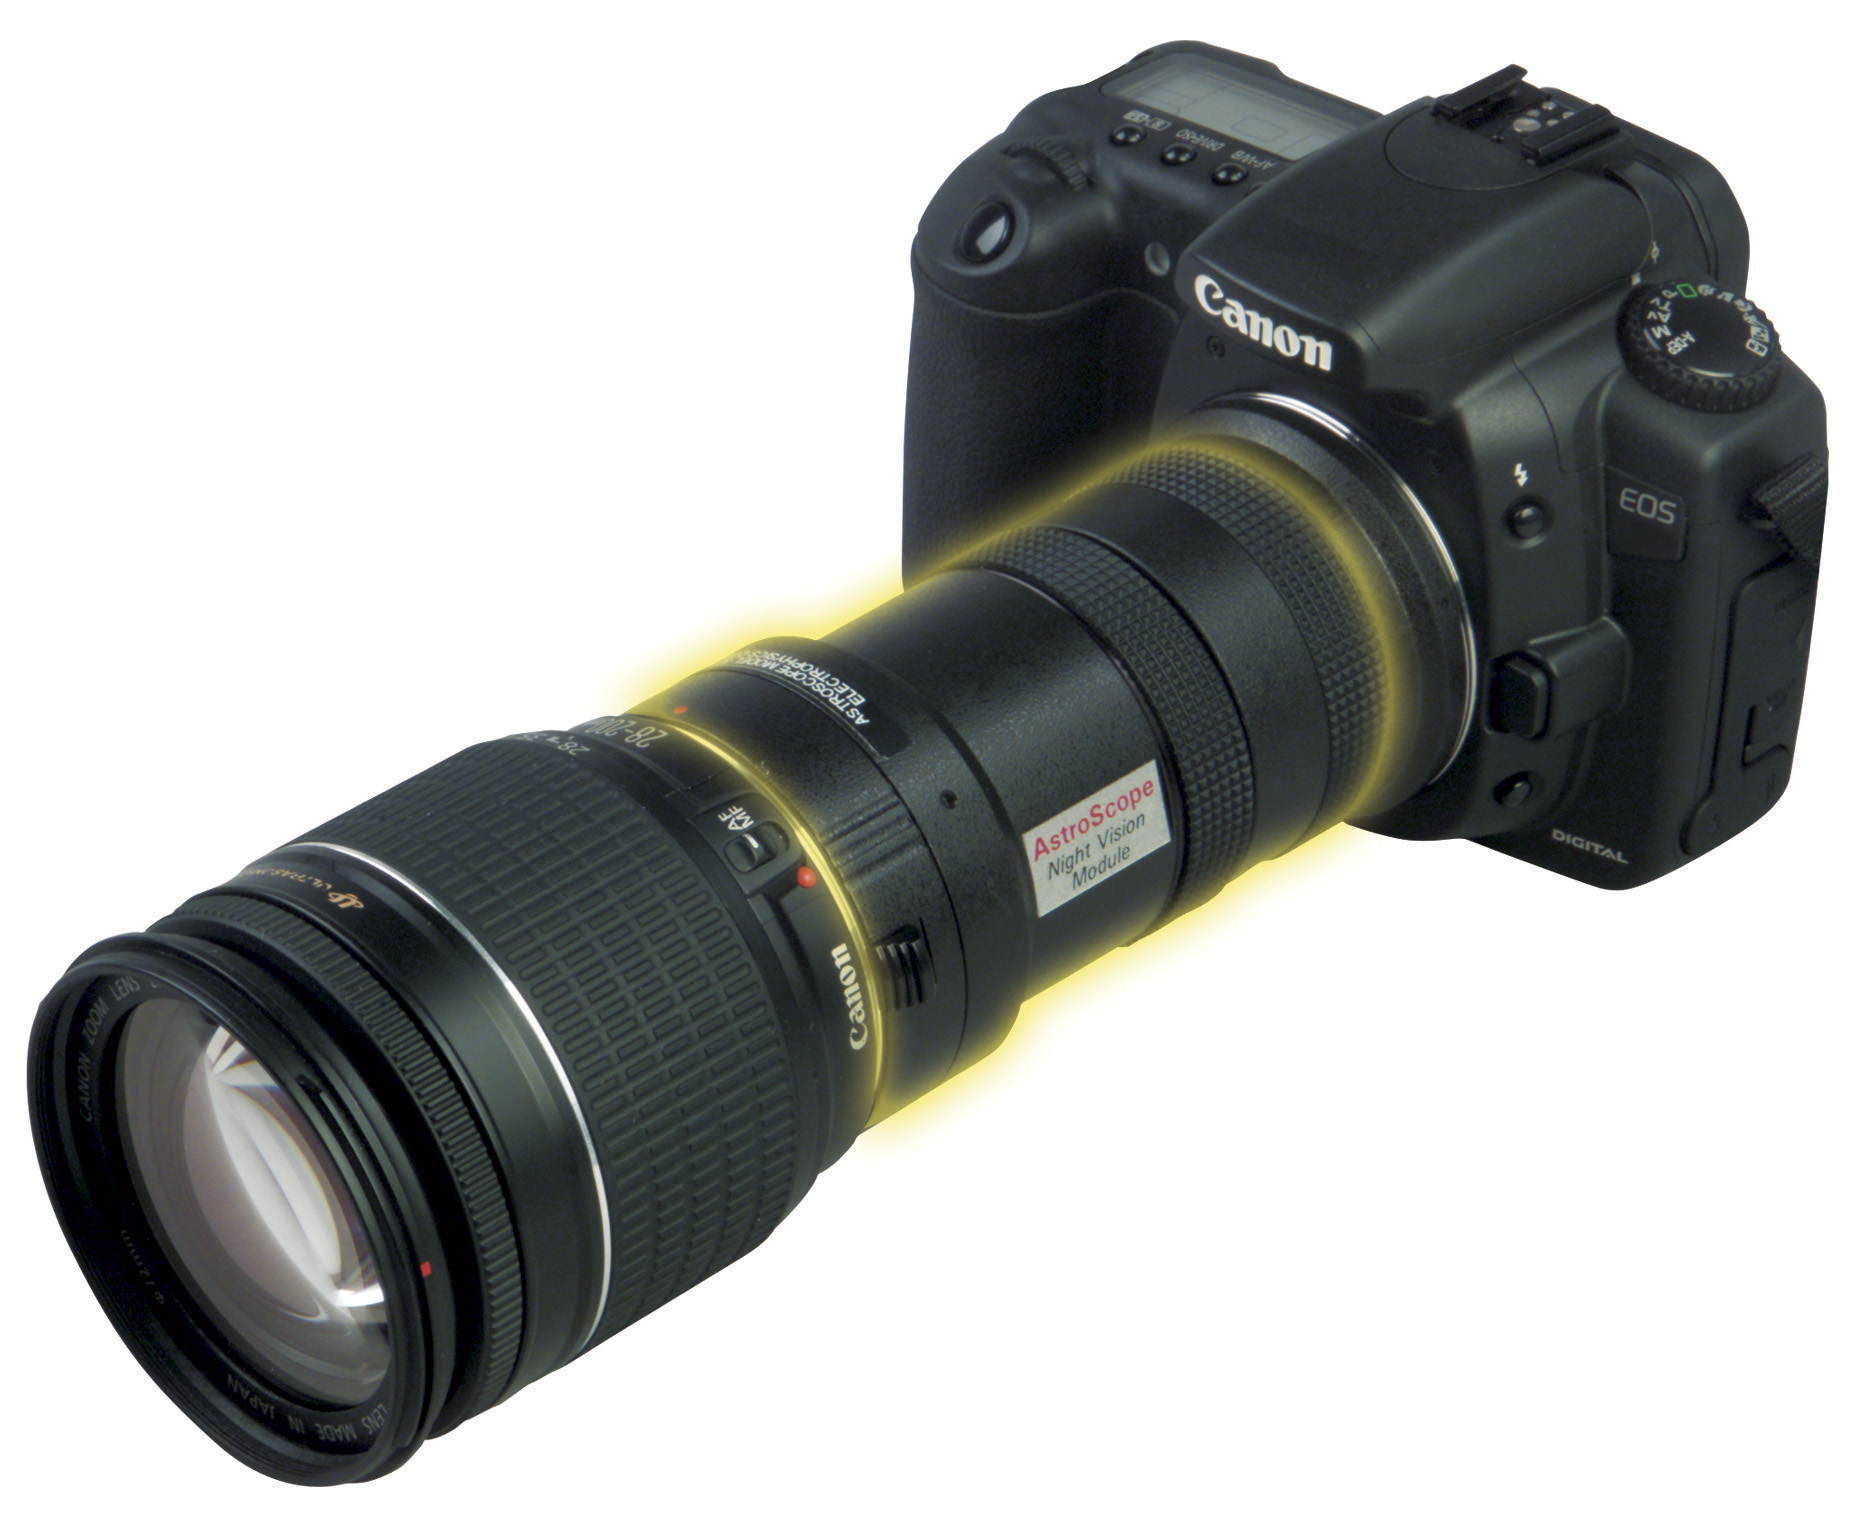 AstroScope 9350 Night Vision Module - dSLR config